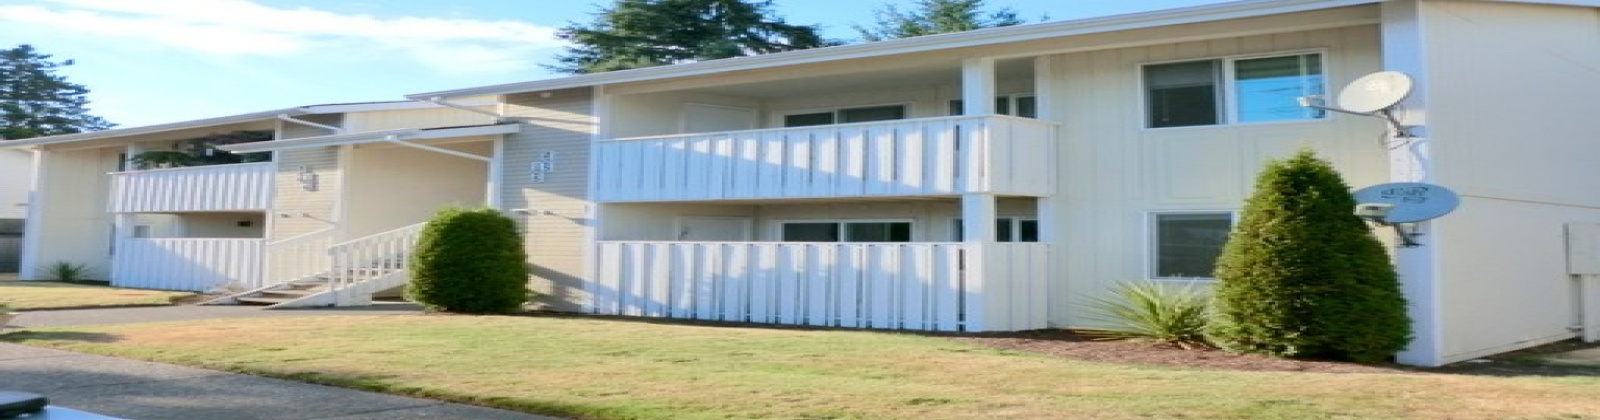 4215 S 66th, Tacoma, Washington, 1 Bedroom Bedrooms, ,1 BathroomBathrooms,Apartment,For Rent,2,1000